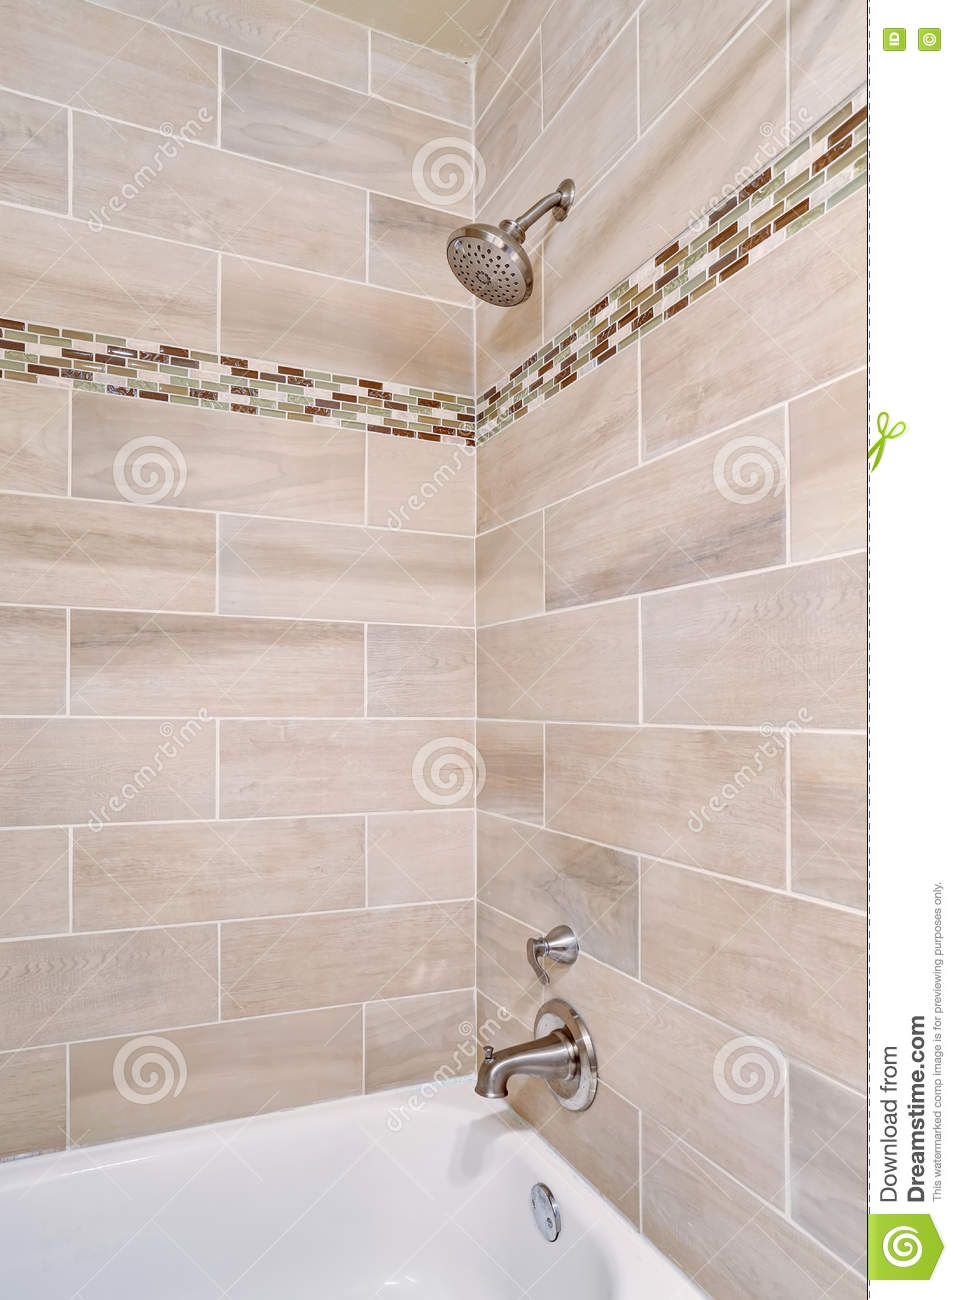 bathroom interior design view of open shower with tile wall trim